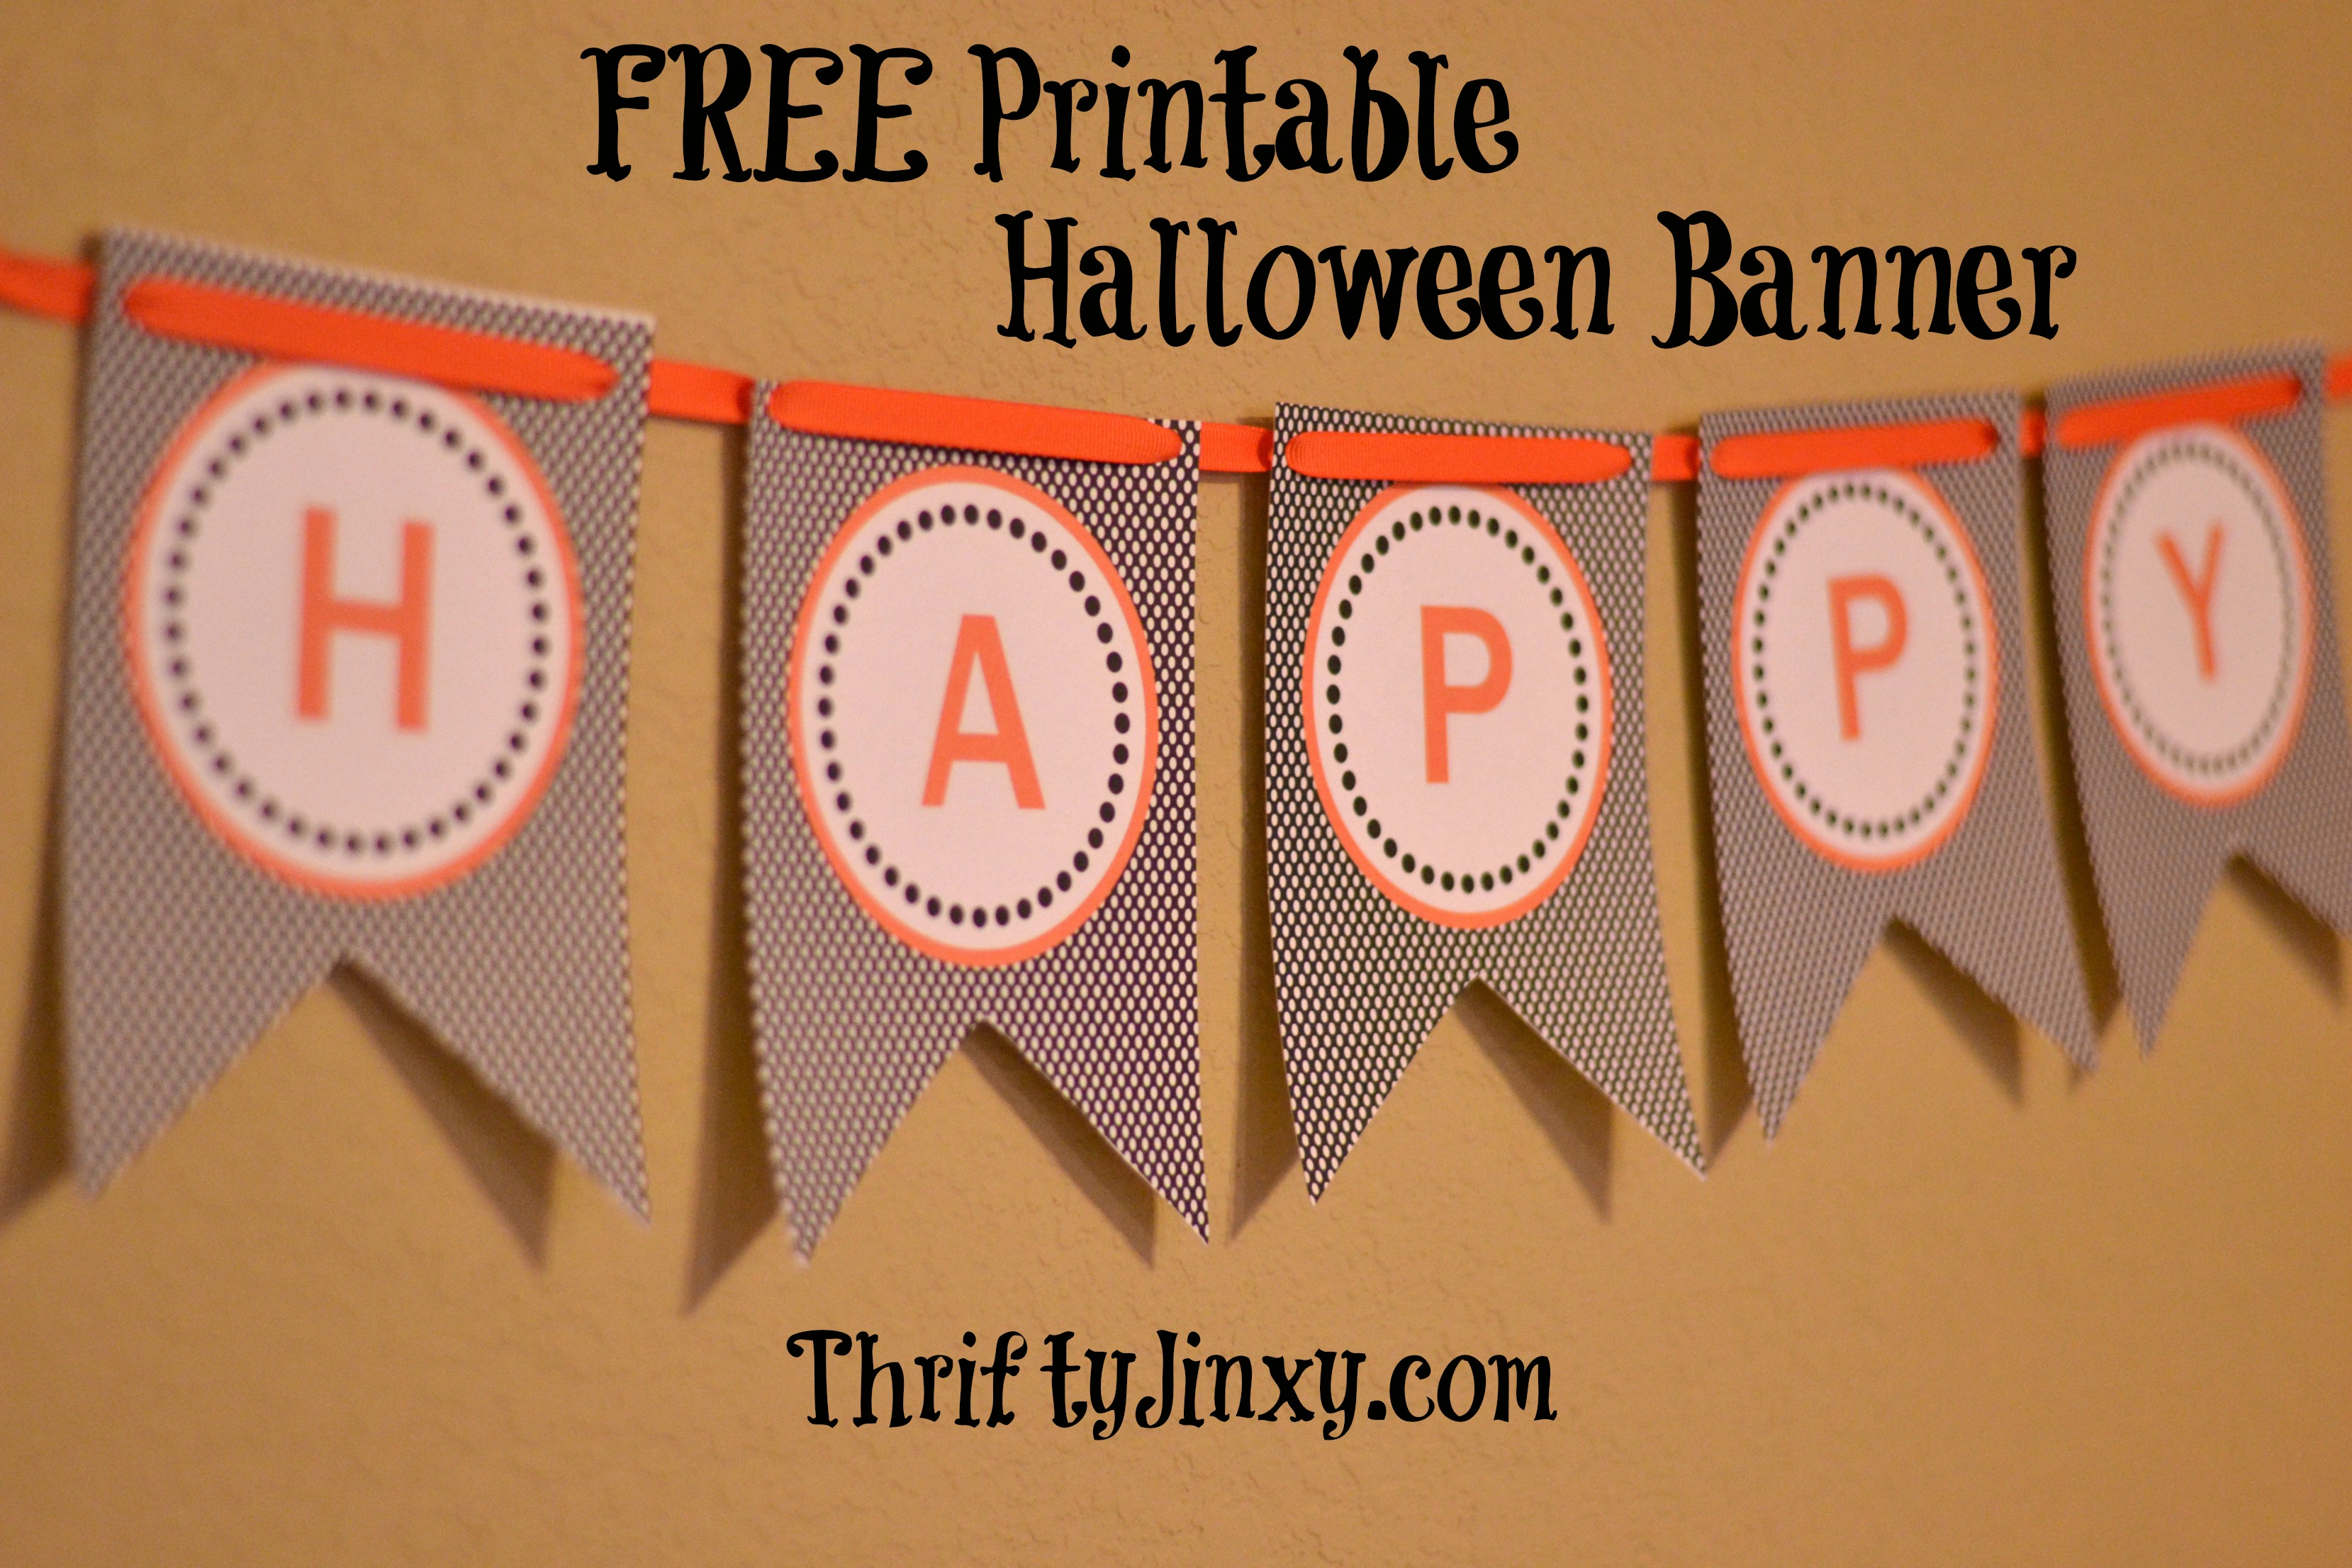 Free Printable Halloween Banner - Thrifty Jinxy - Free Printable Halloween Banner